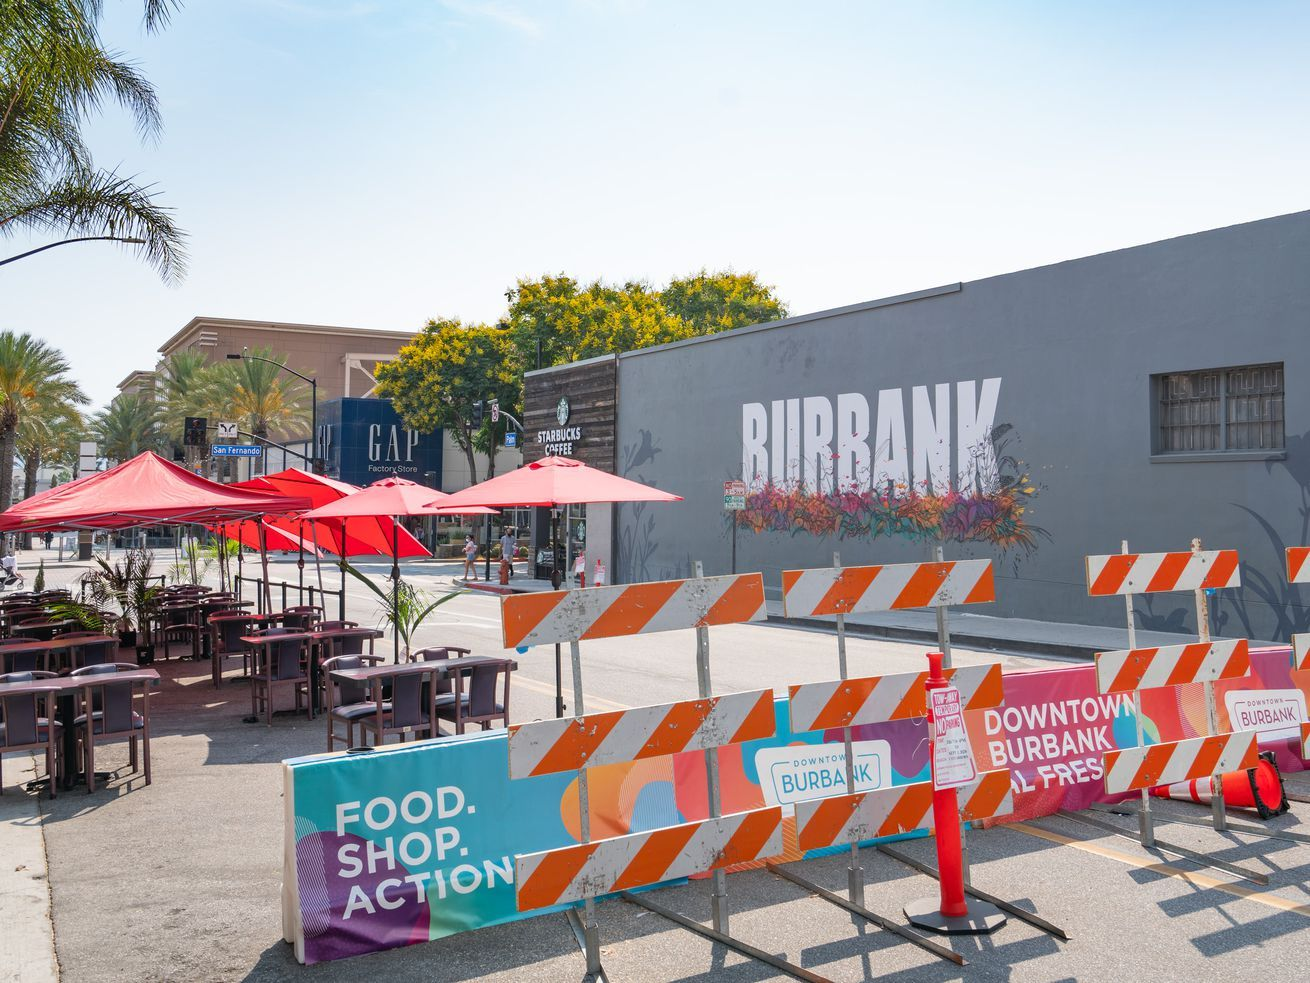 Los Angeles Mayor Extends Sidewalk Parking Lot Dining Program Until End Of 2020 In 2020 Outdoor Dining Area Burbank Indoor Dining